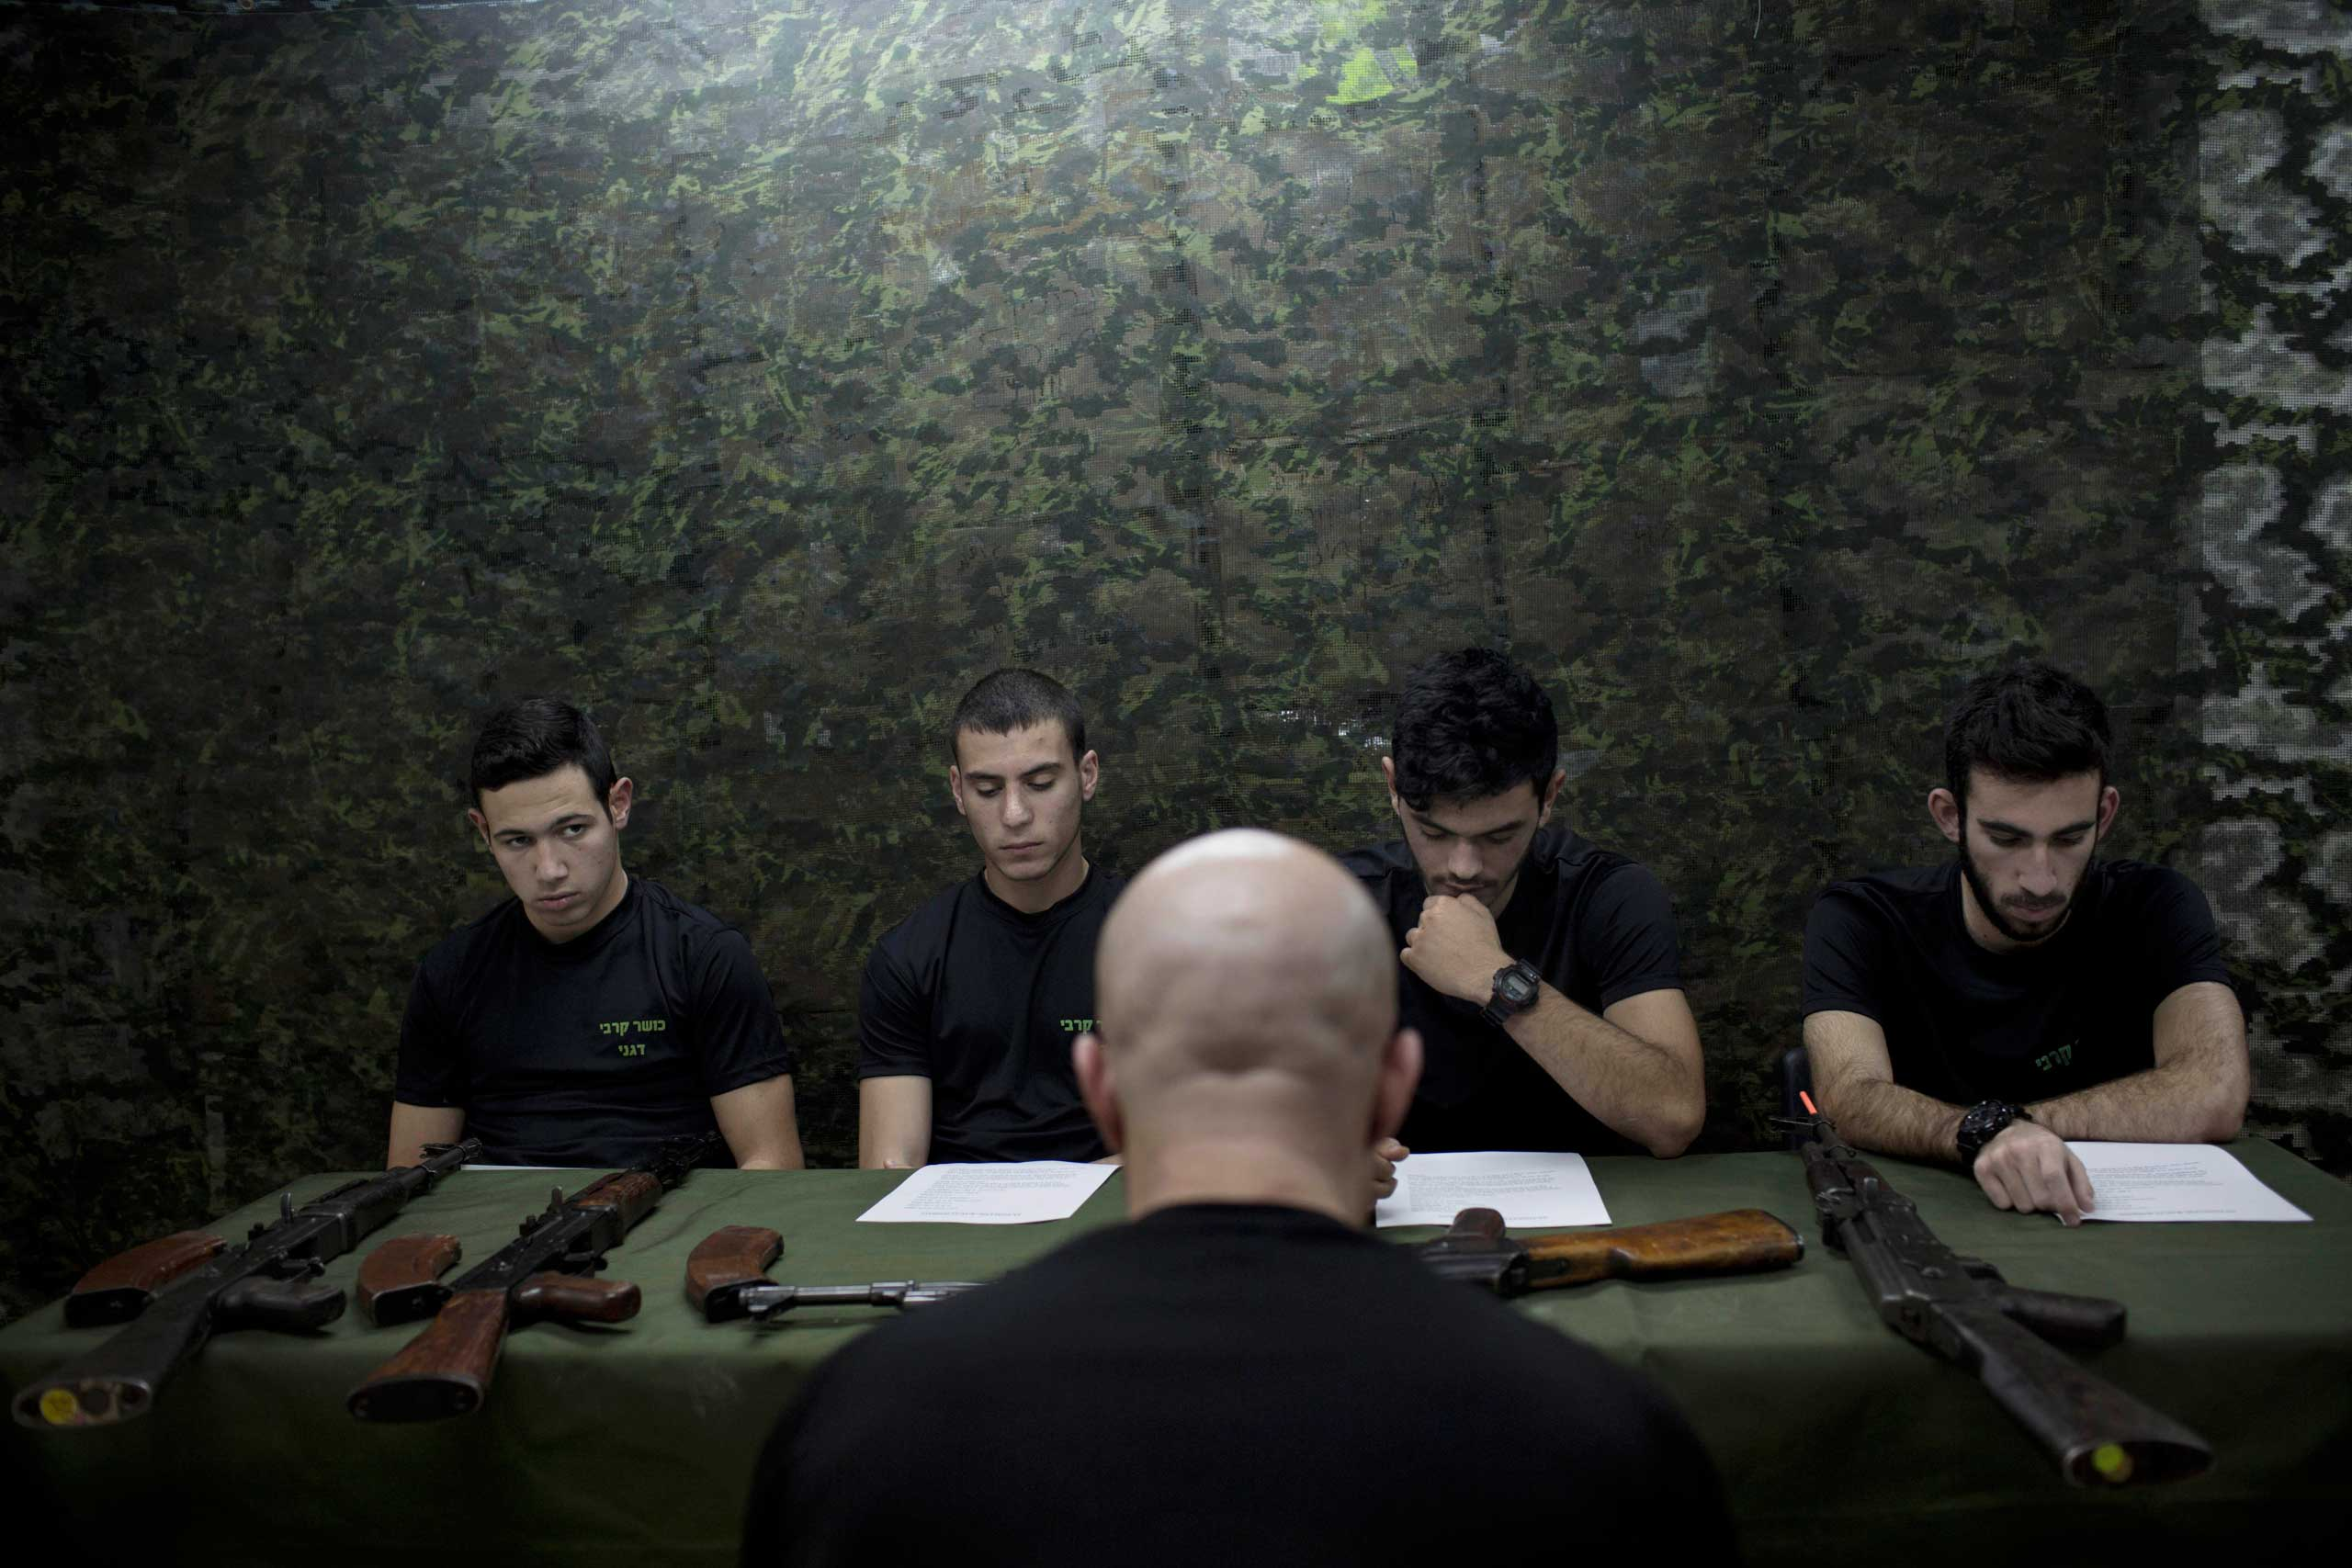 Israeli high-school seniors are instructed on the AK-47 assault rifle as part of a privately run military combat fitness training to prepare for national military service in Netanya, central Israel,  Feb. 17, 2015.